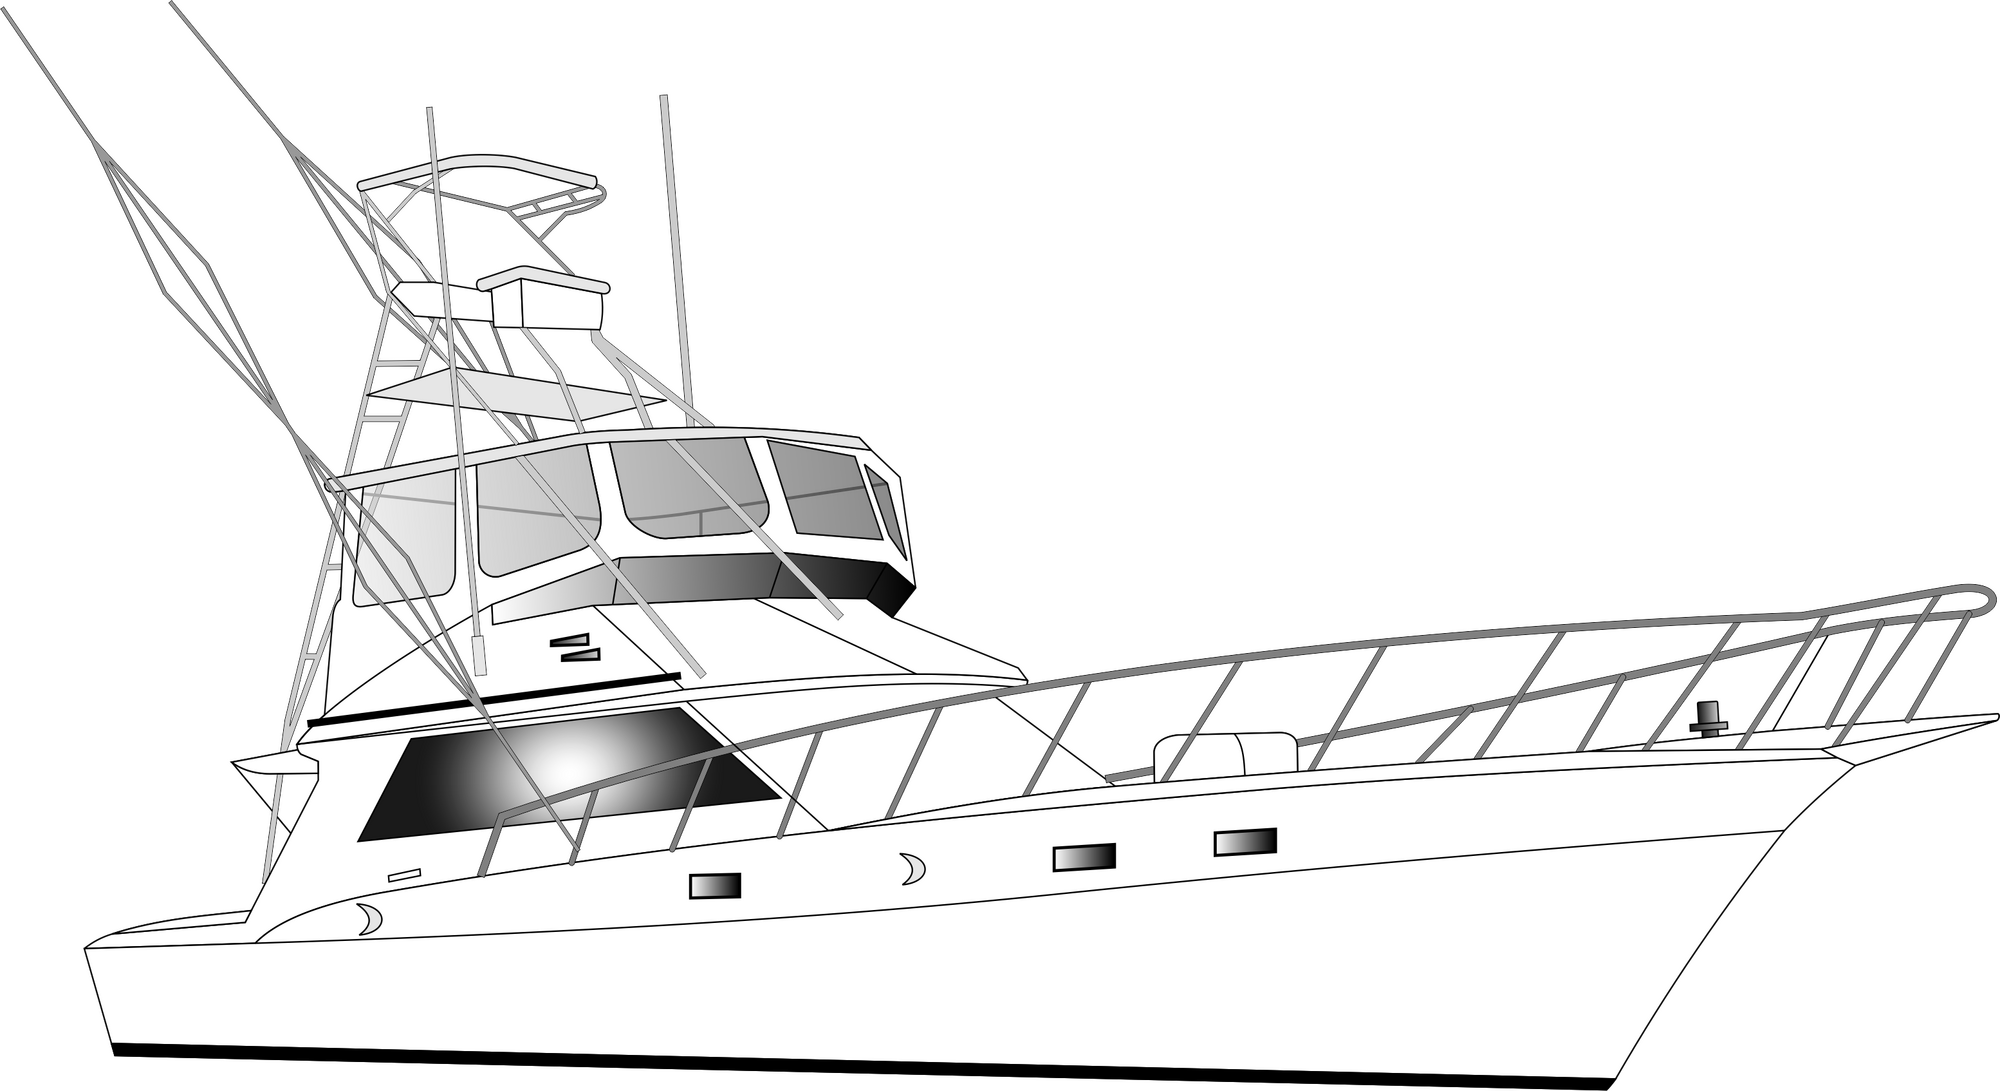 how to draw a fishing boat fishing share how to draw a sailboat on water draw fishing how boat to a